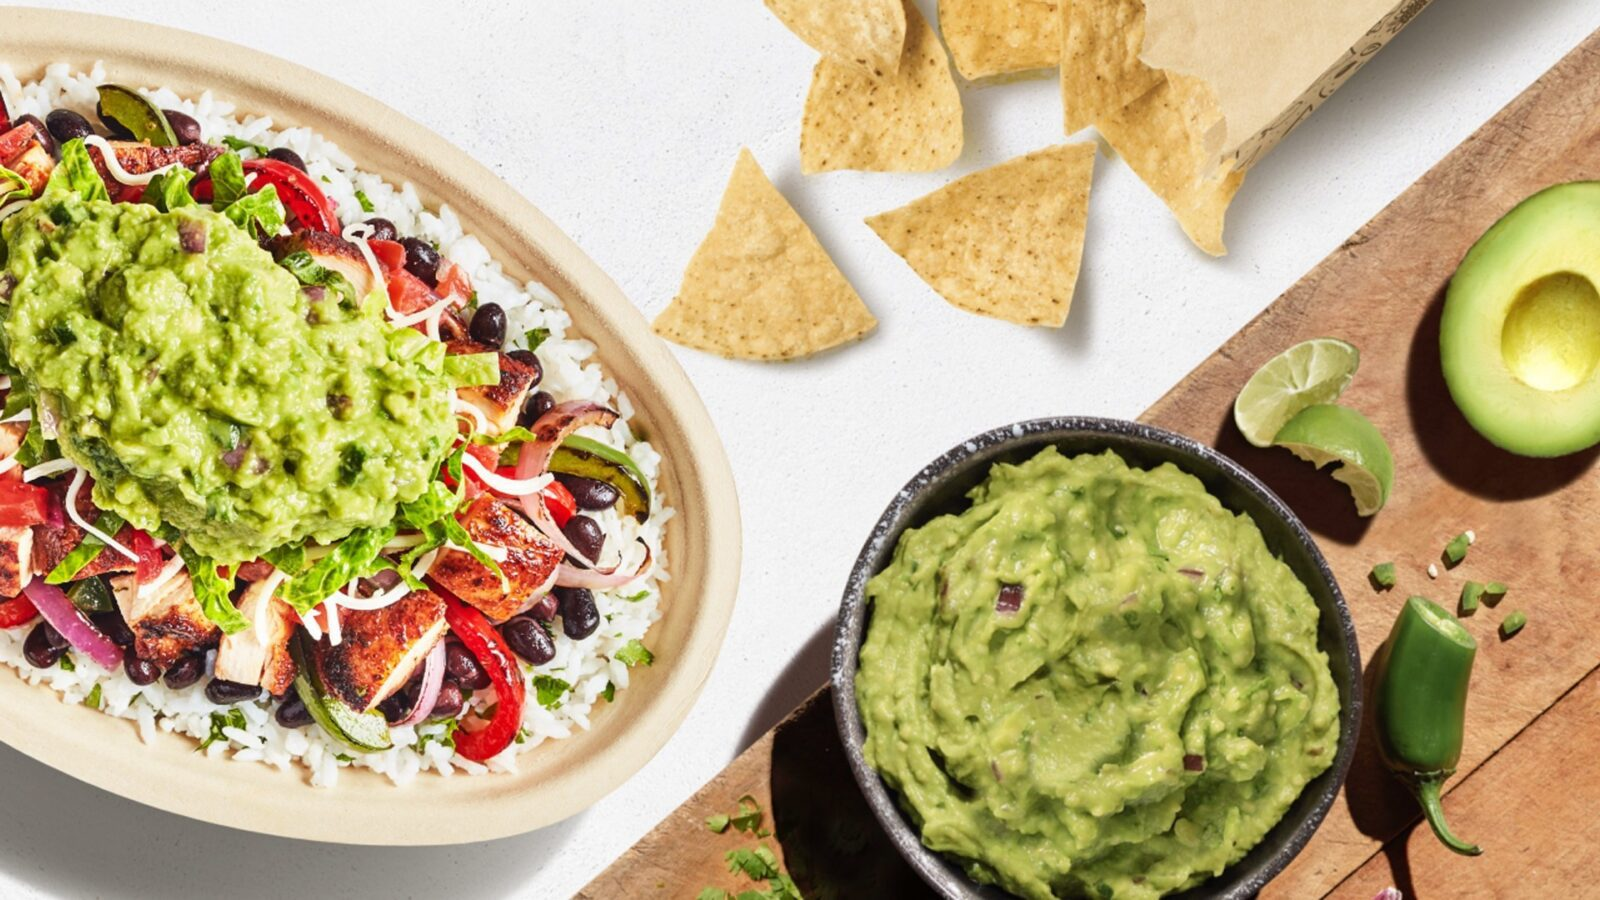 Chipotle - Free Guac On National Avocado Day